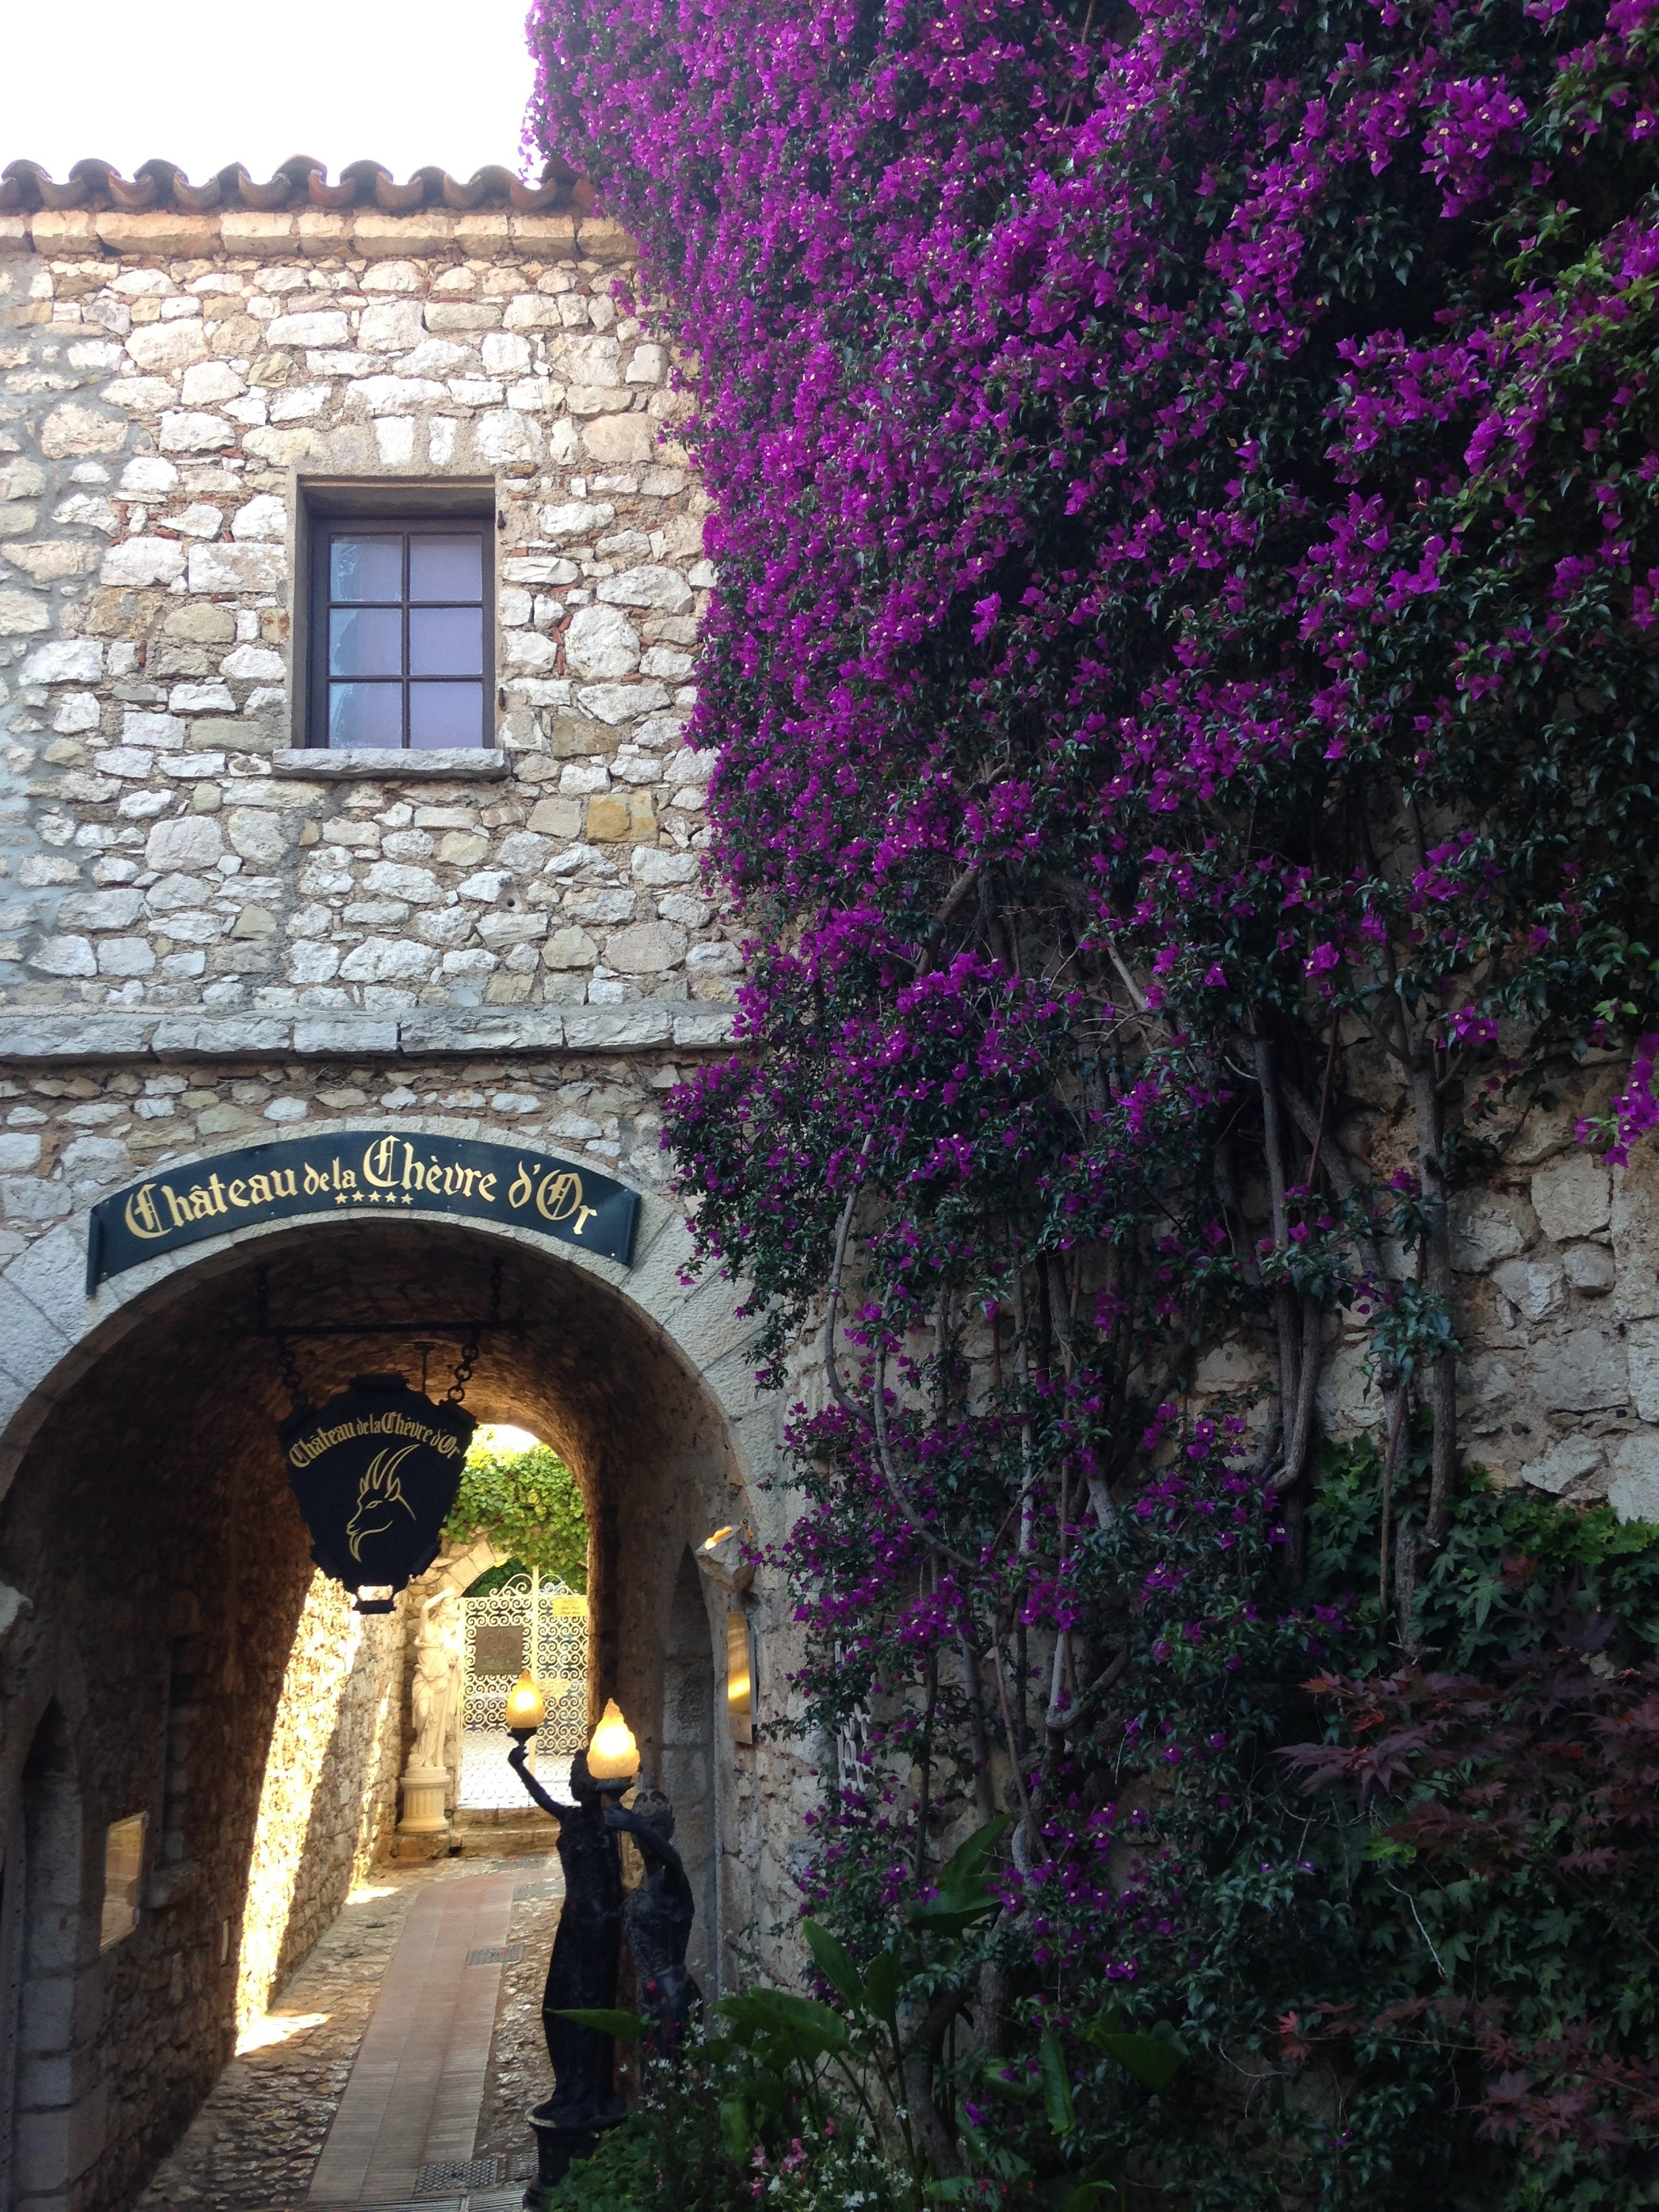 Entrance to Chateau de la Chevre d'Or hotel